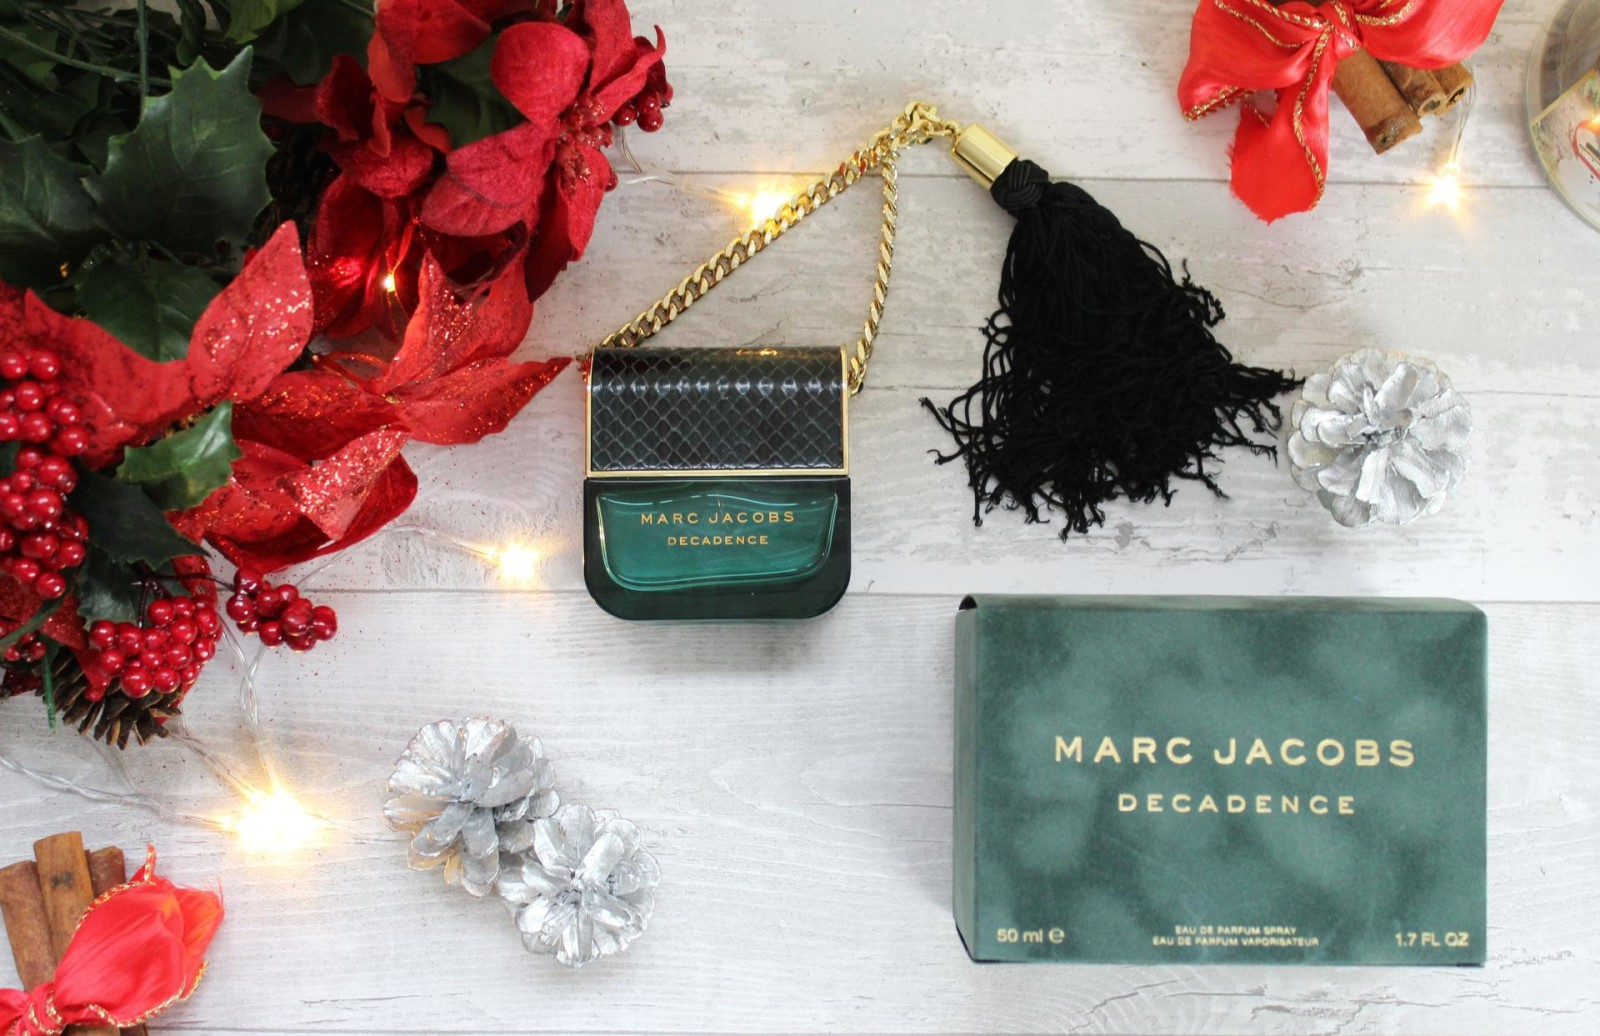 Marc Jacobs Decadence Debenhams